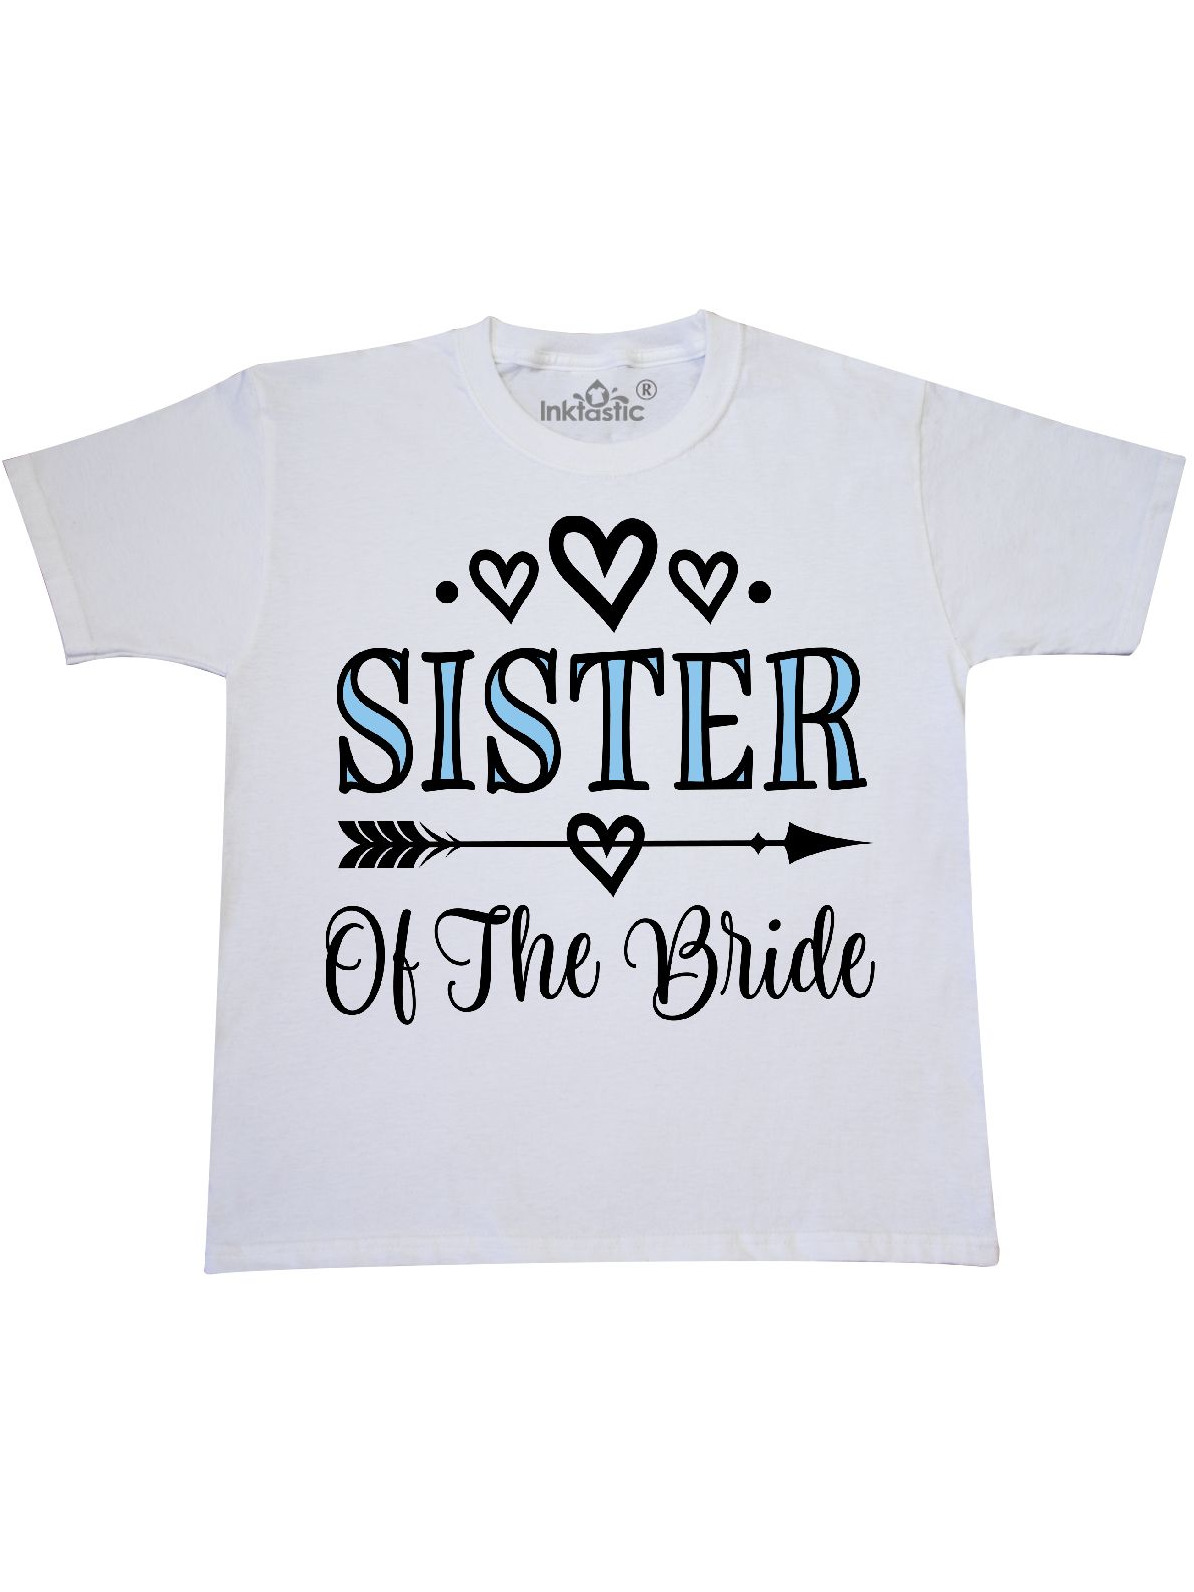 Sister Of The Bride Wedding Party Youth T Shirt Walmart